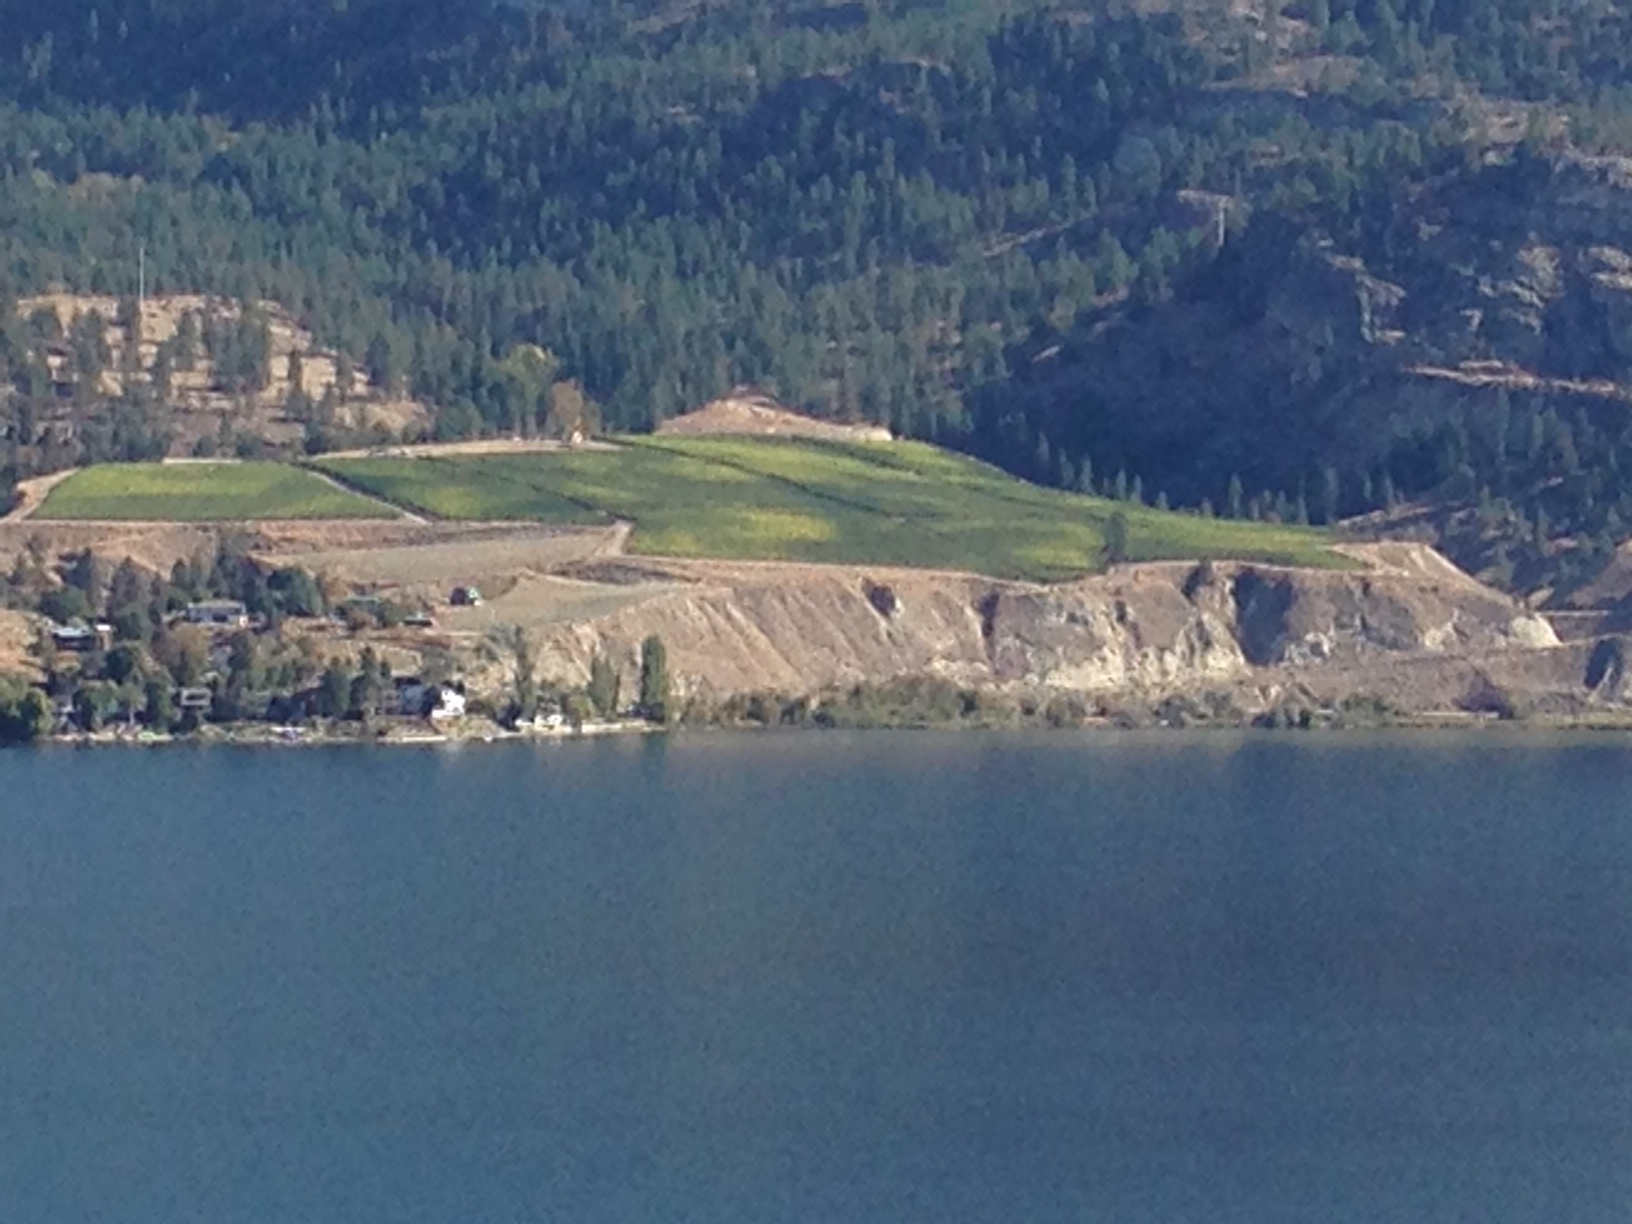 Painted Rock's Estate Vineyard from across Skaha Lake.